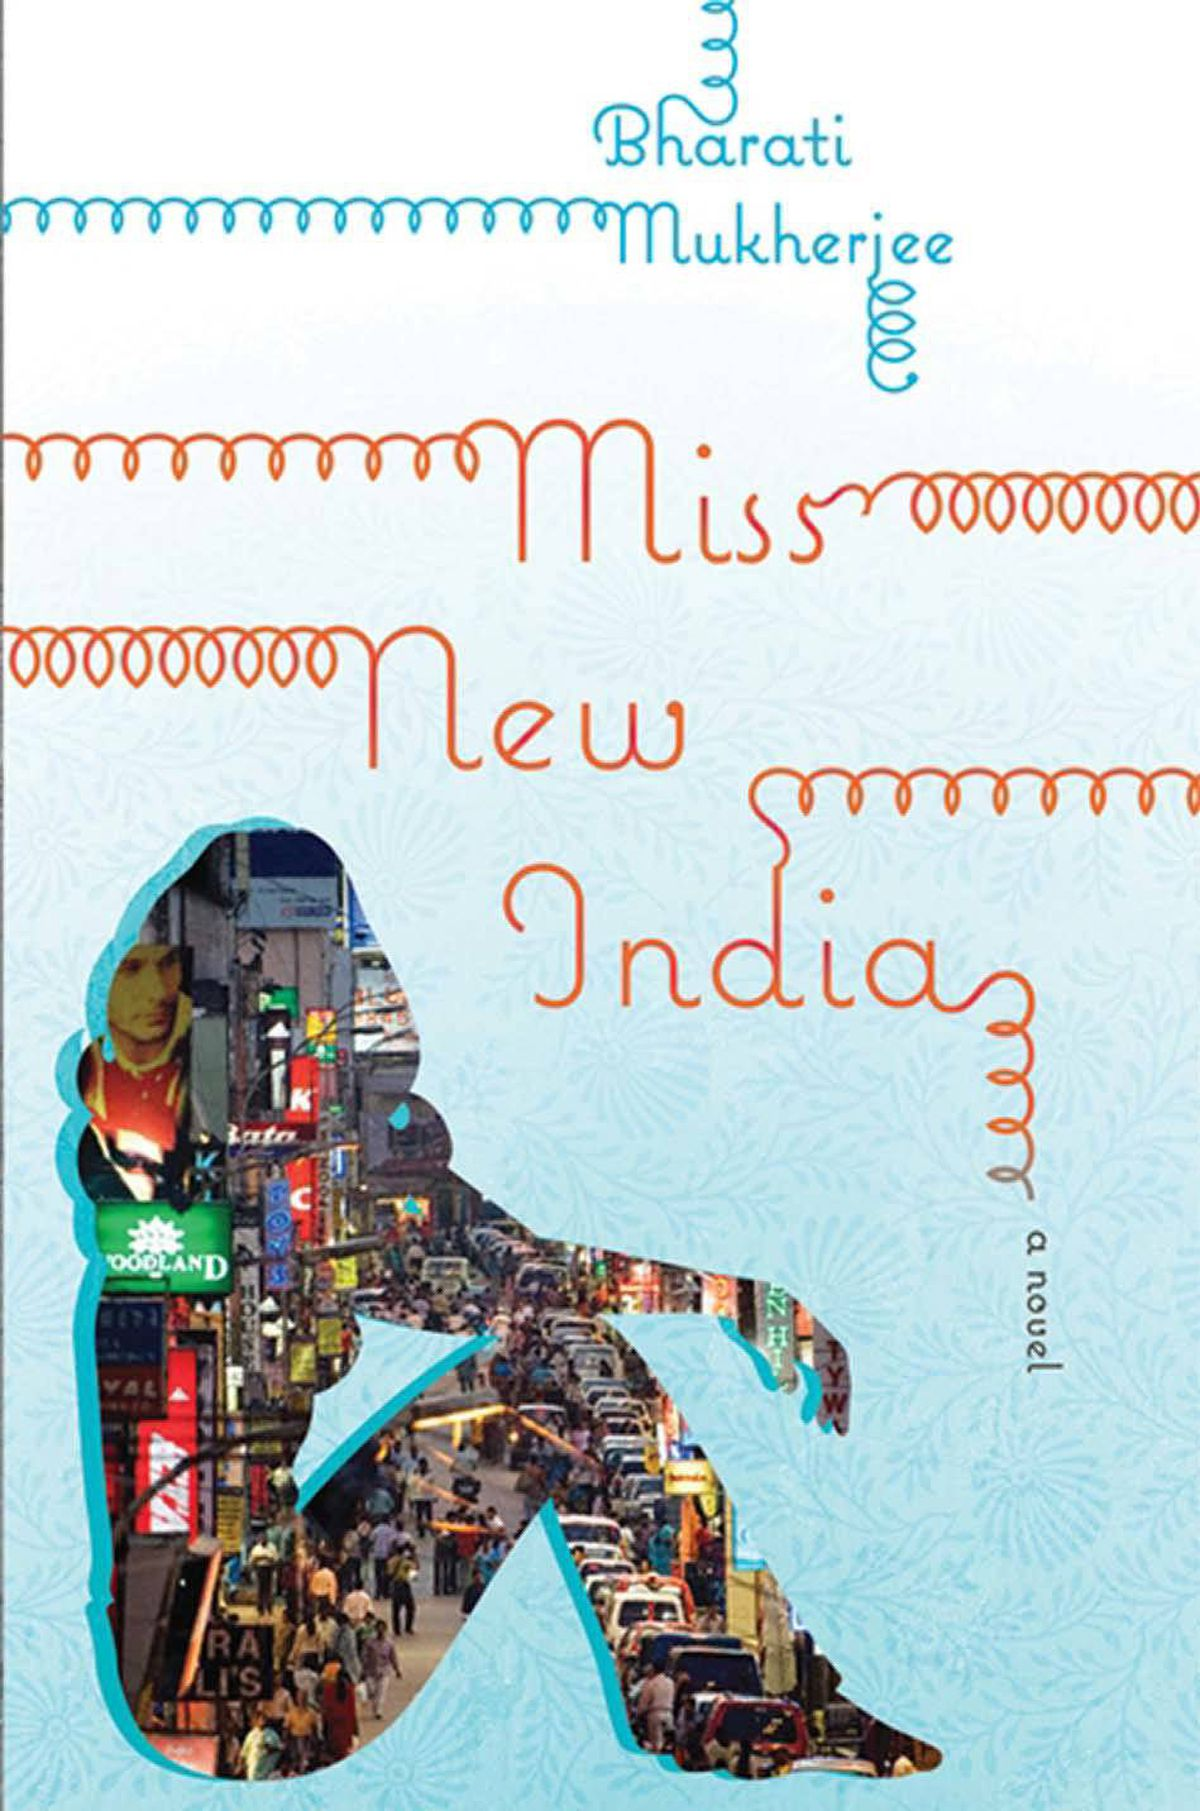 MISS NEW INDIA By Bharati Mukherjee (HarperCollins) This is a compelling novel of young people washing up in the call centres, coffee shops and bars of today's Bangalore. It is set in India, but American culture and values loom large. The novel makes sense of India's digital age, and brings the worlds of tradition and change together in ways that illuminate both. – Linda Leith